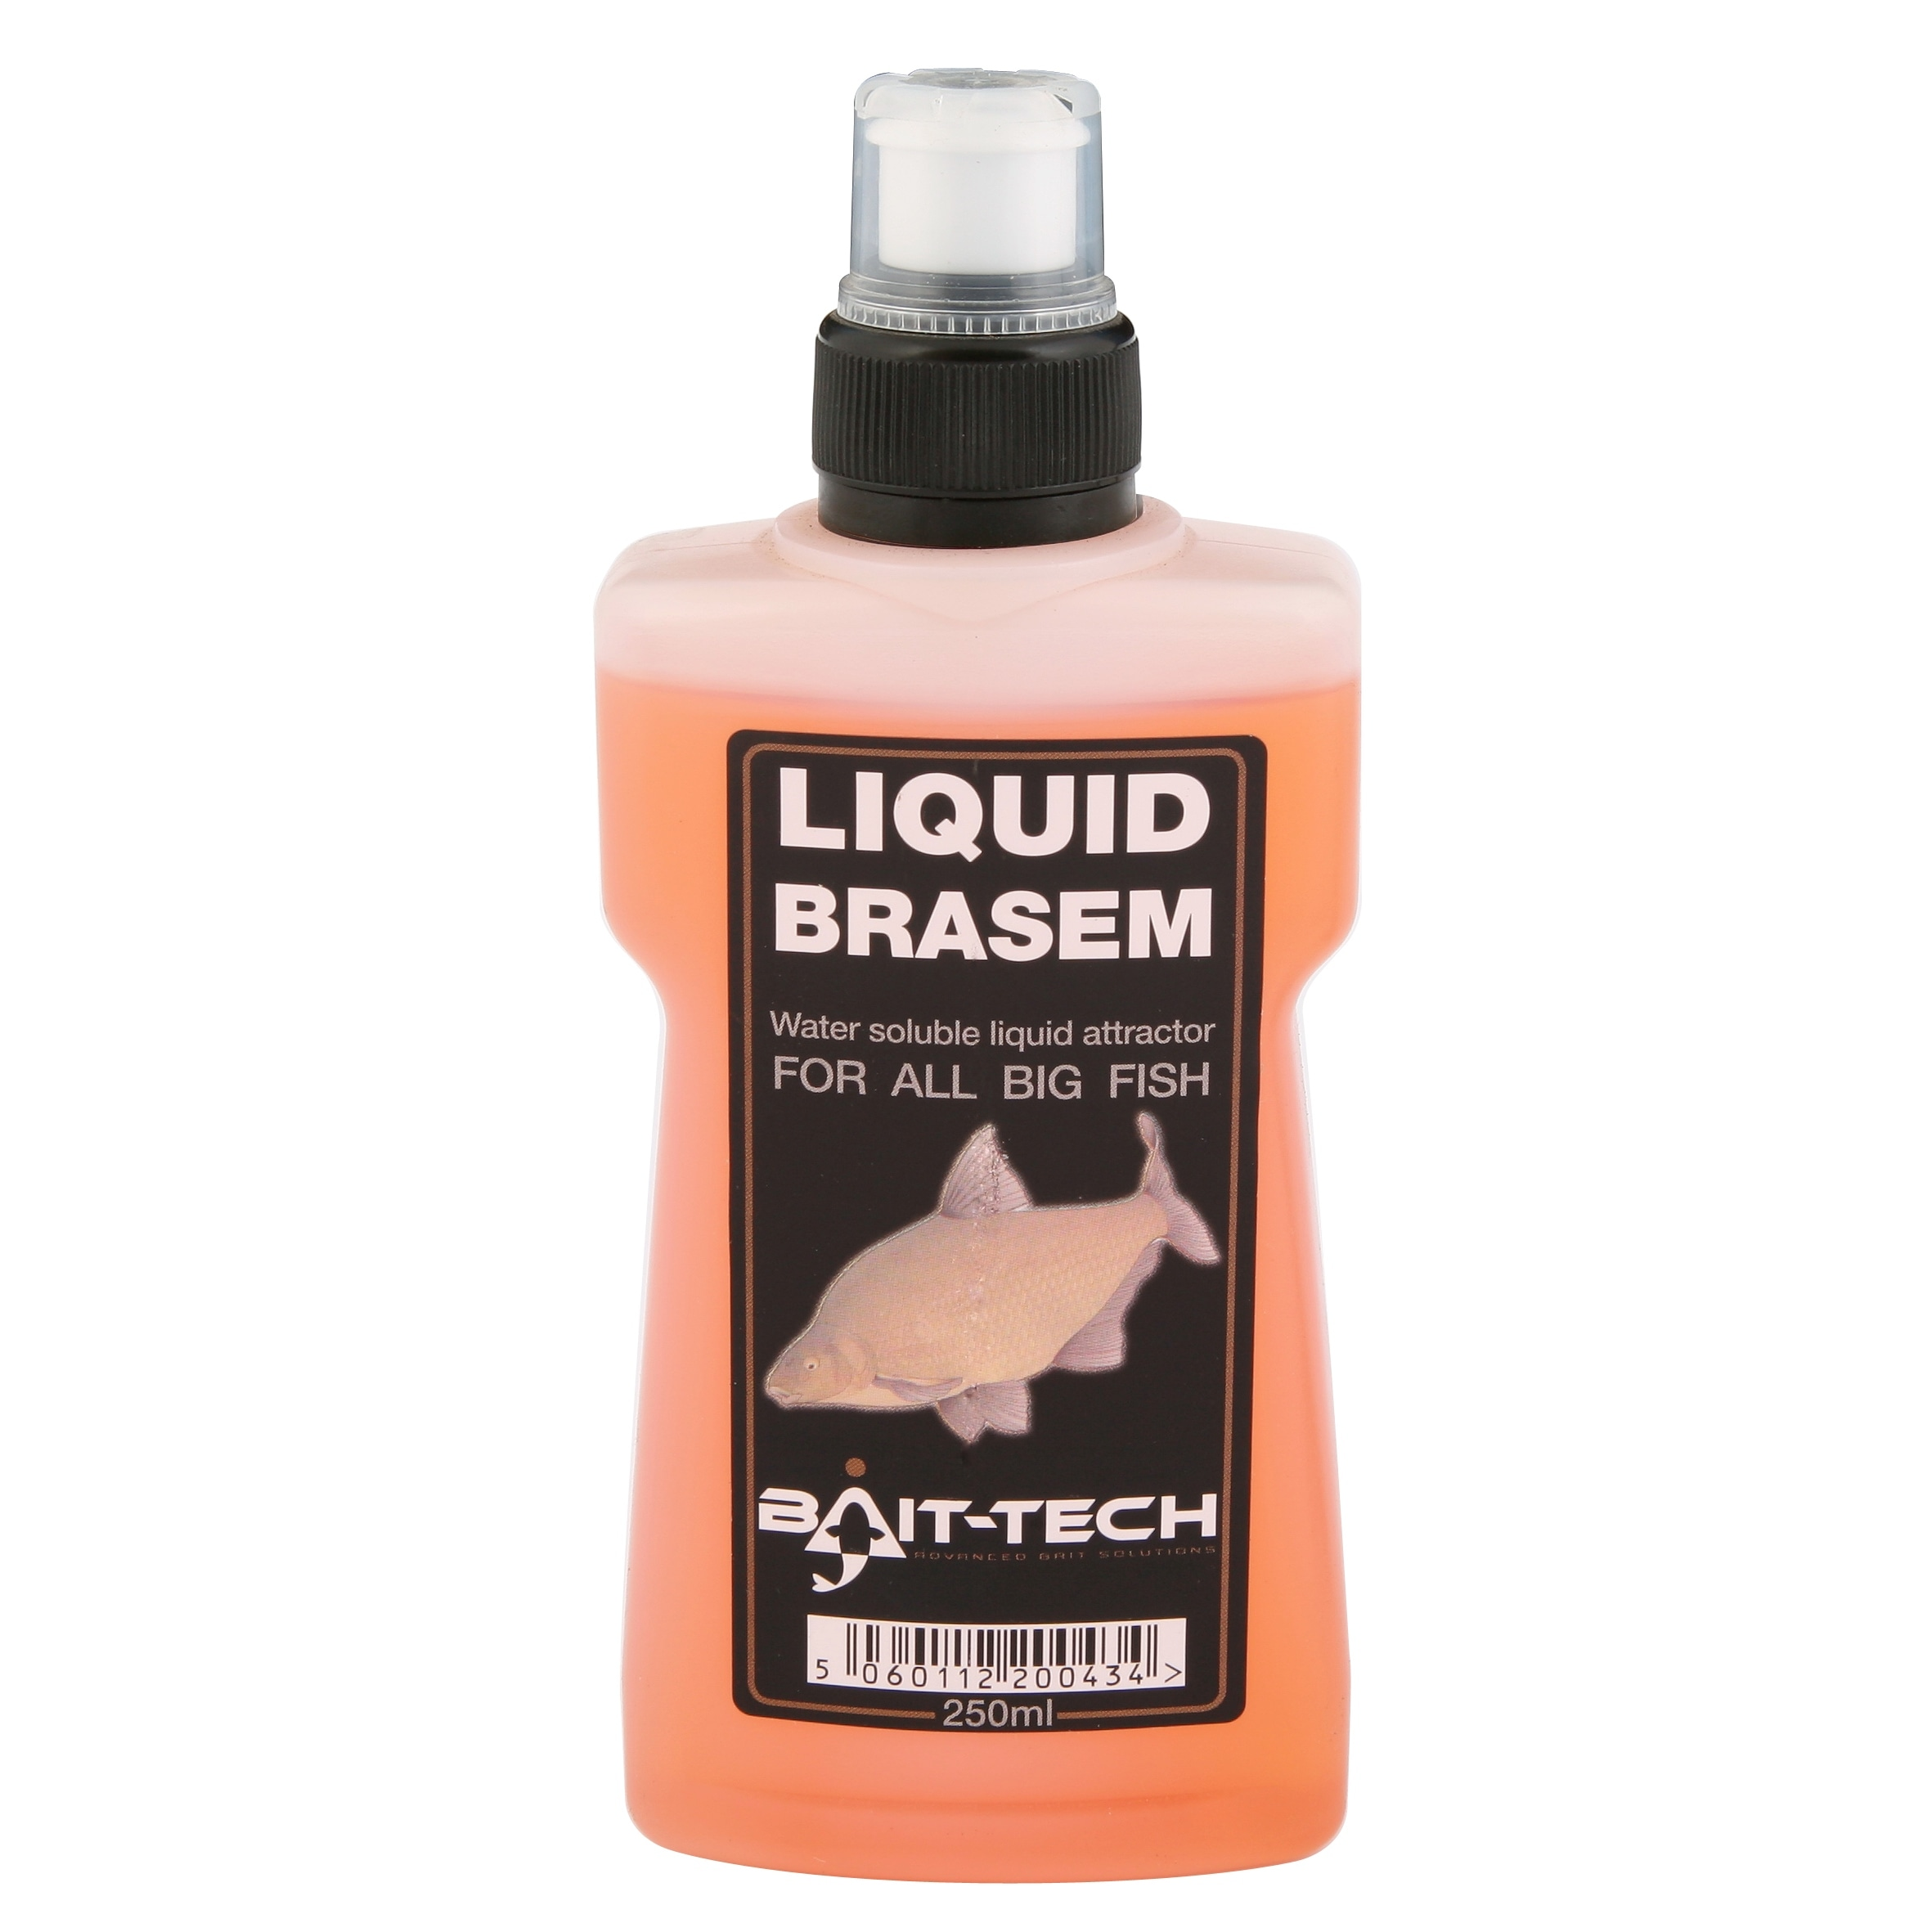 Bait-Tech Tekutá esence Liquid Brasem 250ml